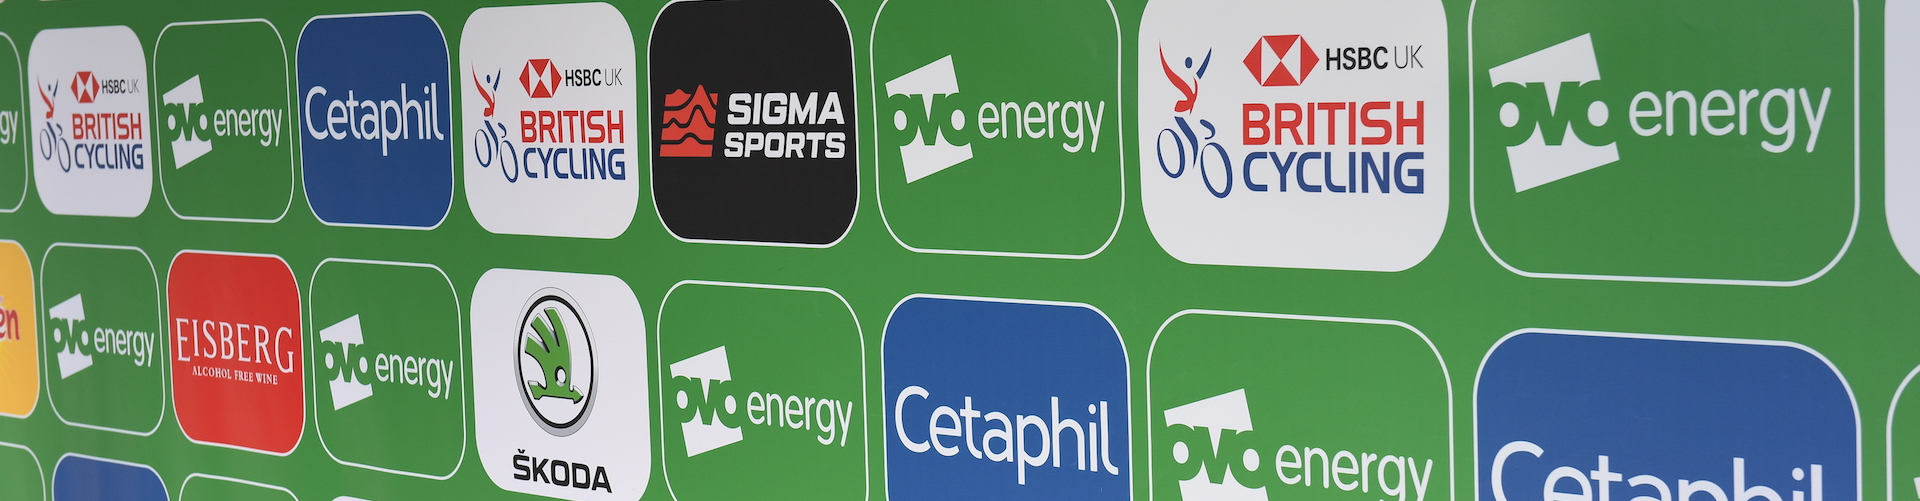 Sponsor's logos for the Tour of Britain are displayed.